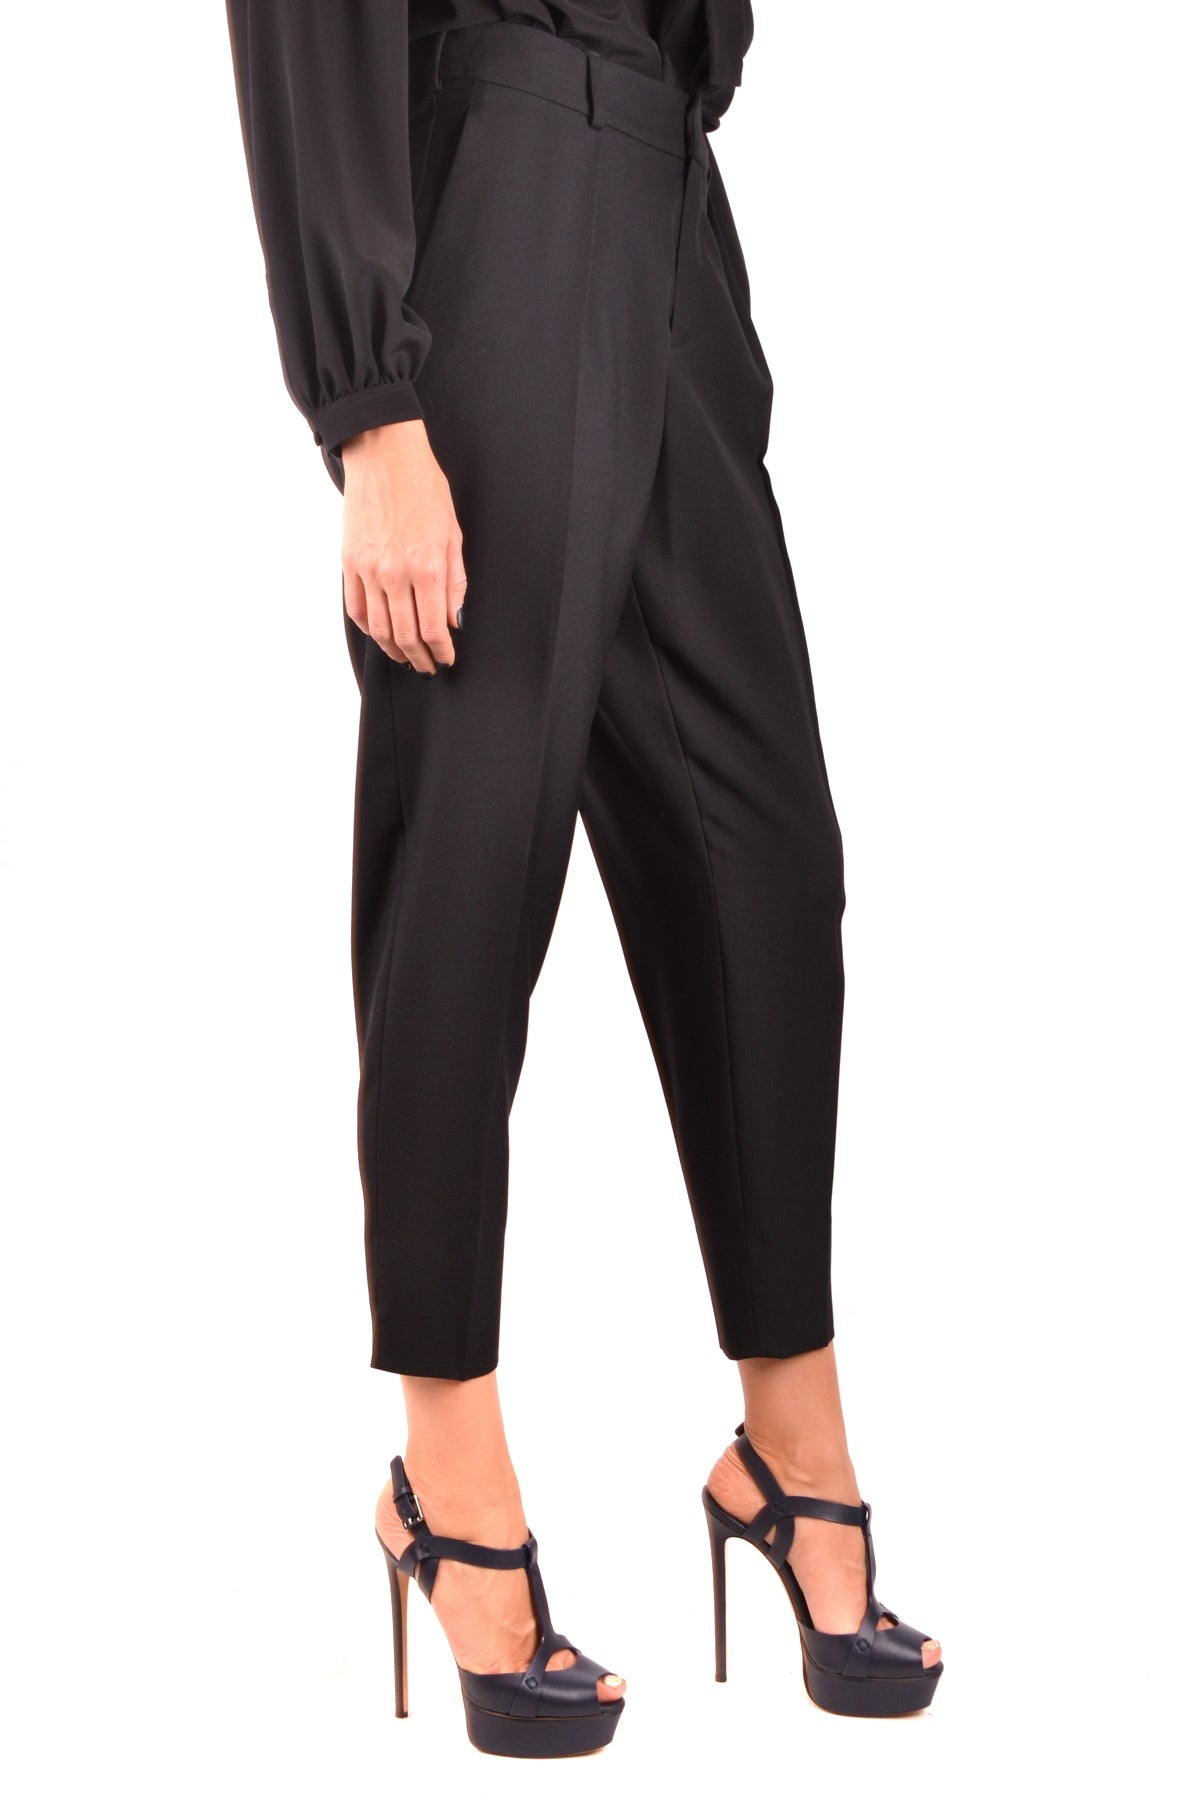 Trousers Saint Laurent-Trousers - WOMAN-Product Details Season: Fall / WinterTerms: New With LabelMain Color: BlackGender: WomanMade In: ItalyManufacturer Part Number: 504413 Y239WSize: FrYear: 2018Clothing Type: TrousersComposition: Wool 100%-Keyomi-Sook